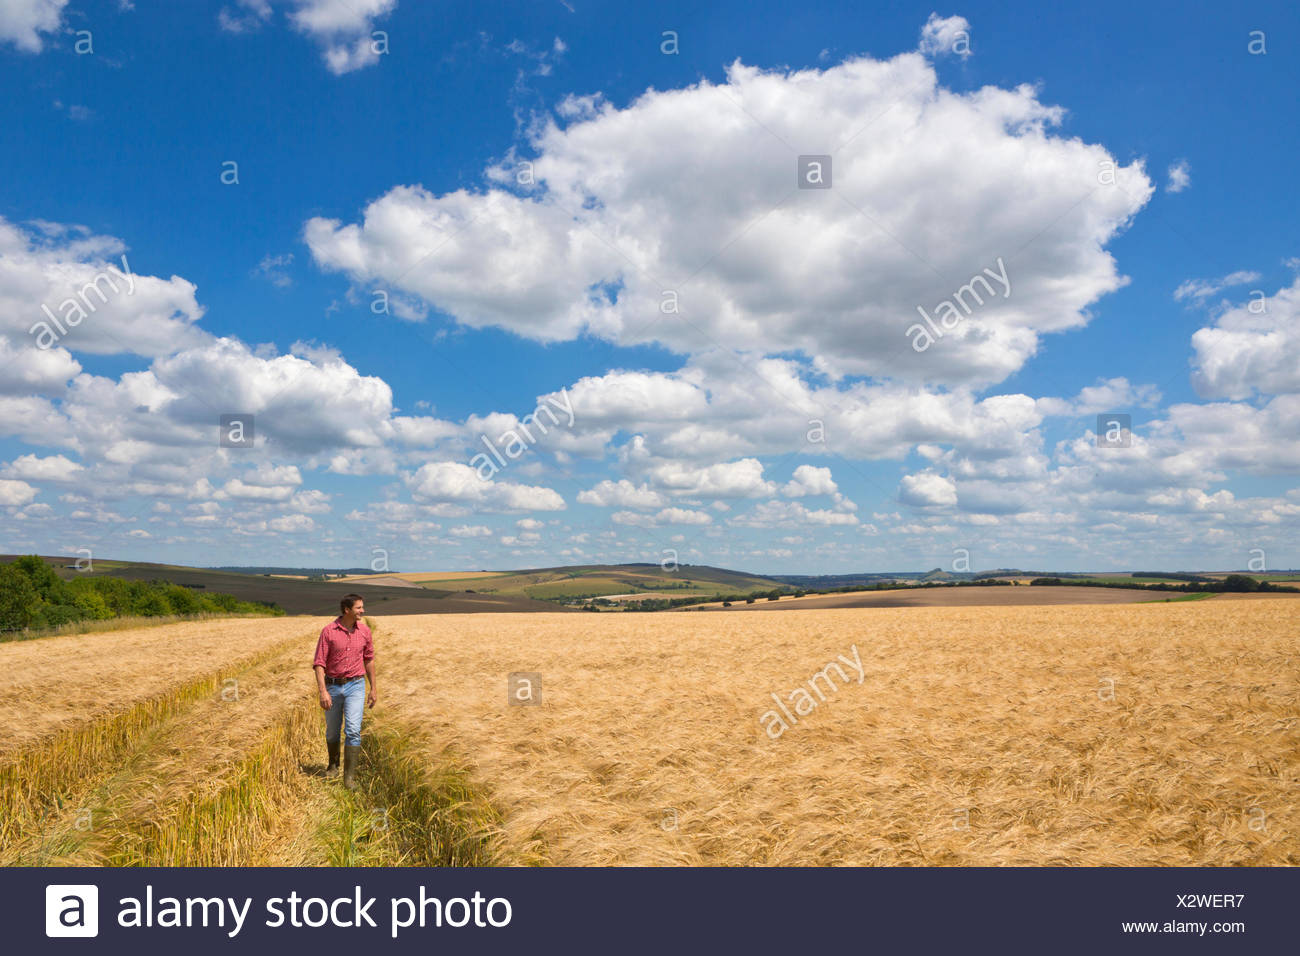 Farmer walking through sunny rural barley crop field in summer - Stock Image